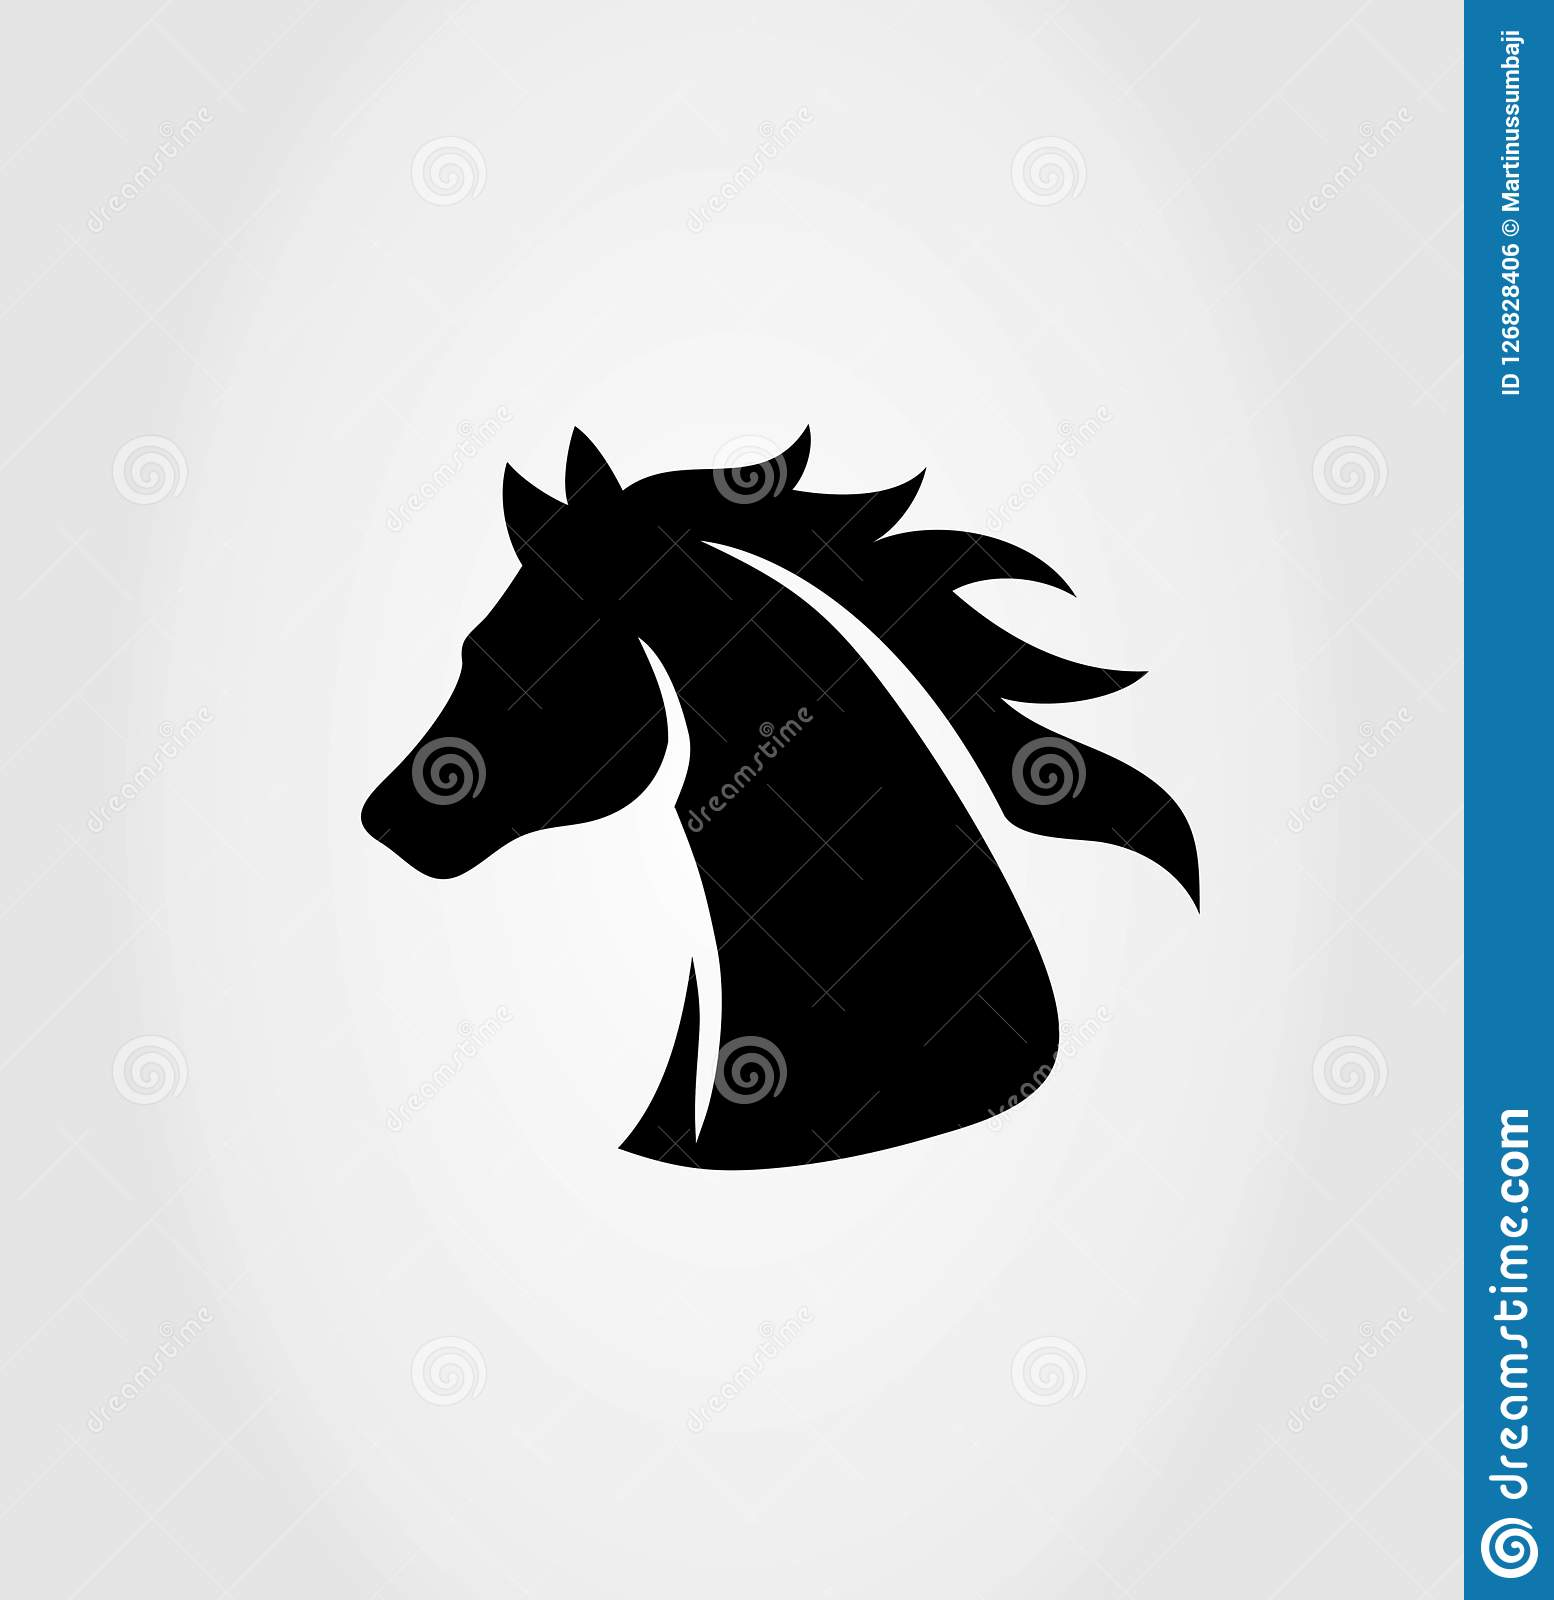 Head Horse Logo Art Vector Design Stock Vector Illustration Of Silhouette Bronco 126828406